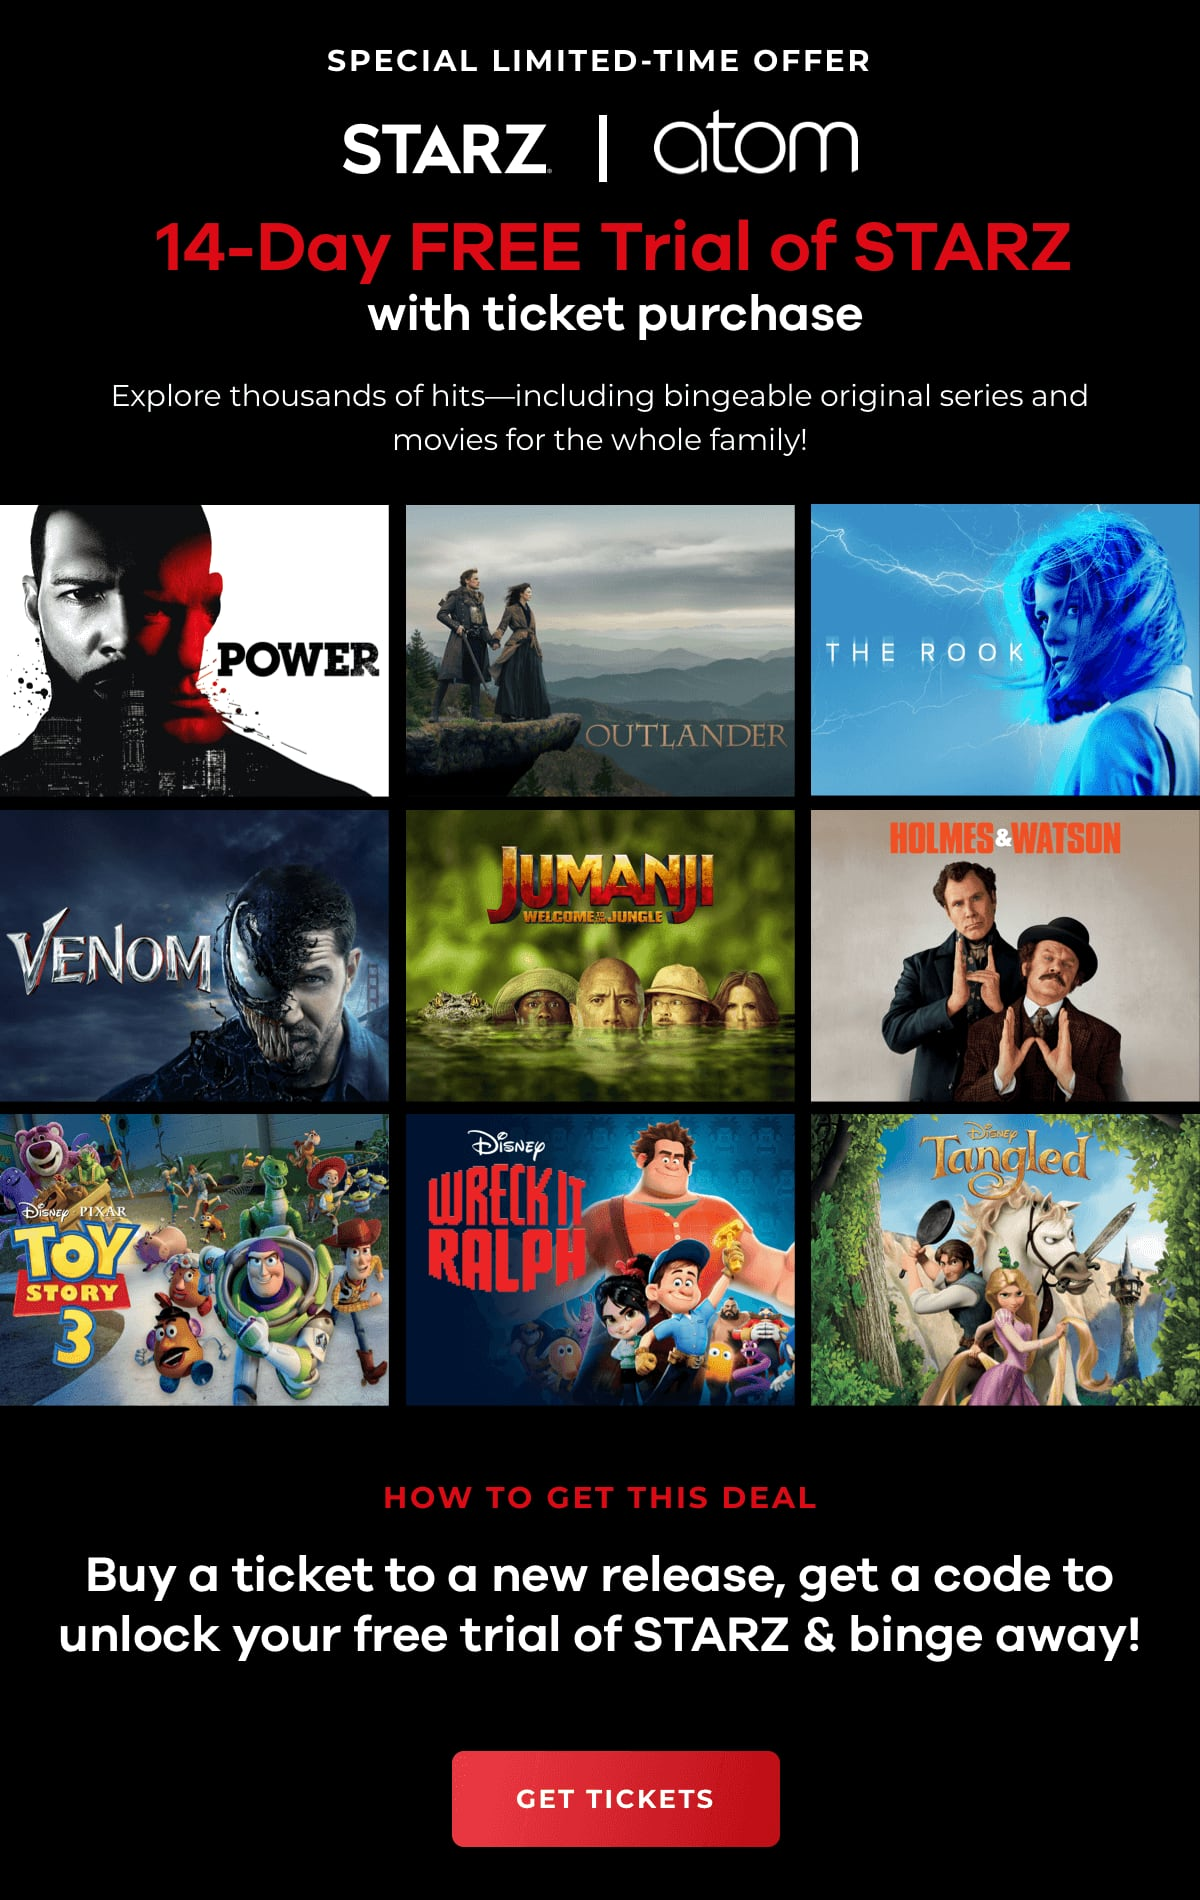 Free 14 day Trial to STARZ with new release ticket purchase on Atom Tickets